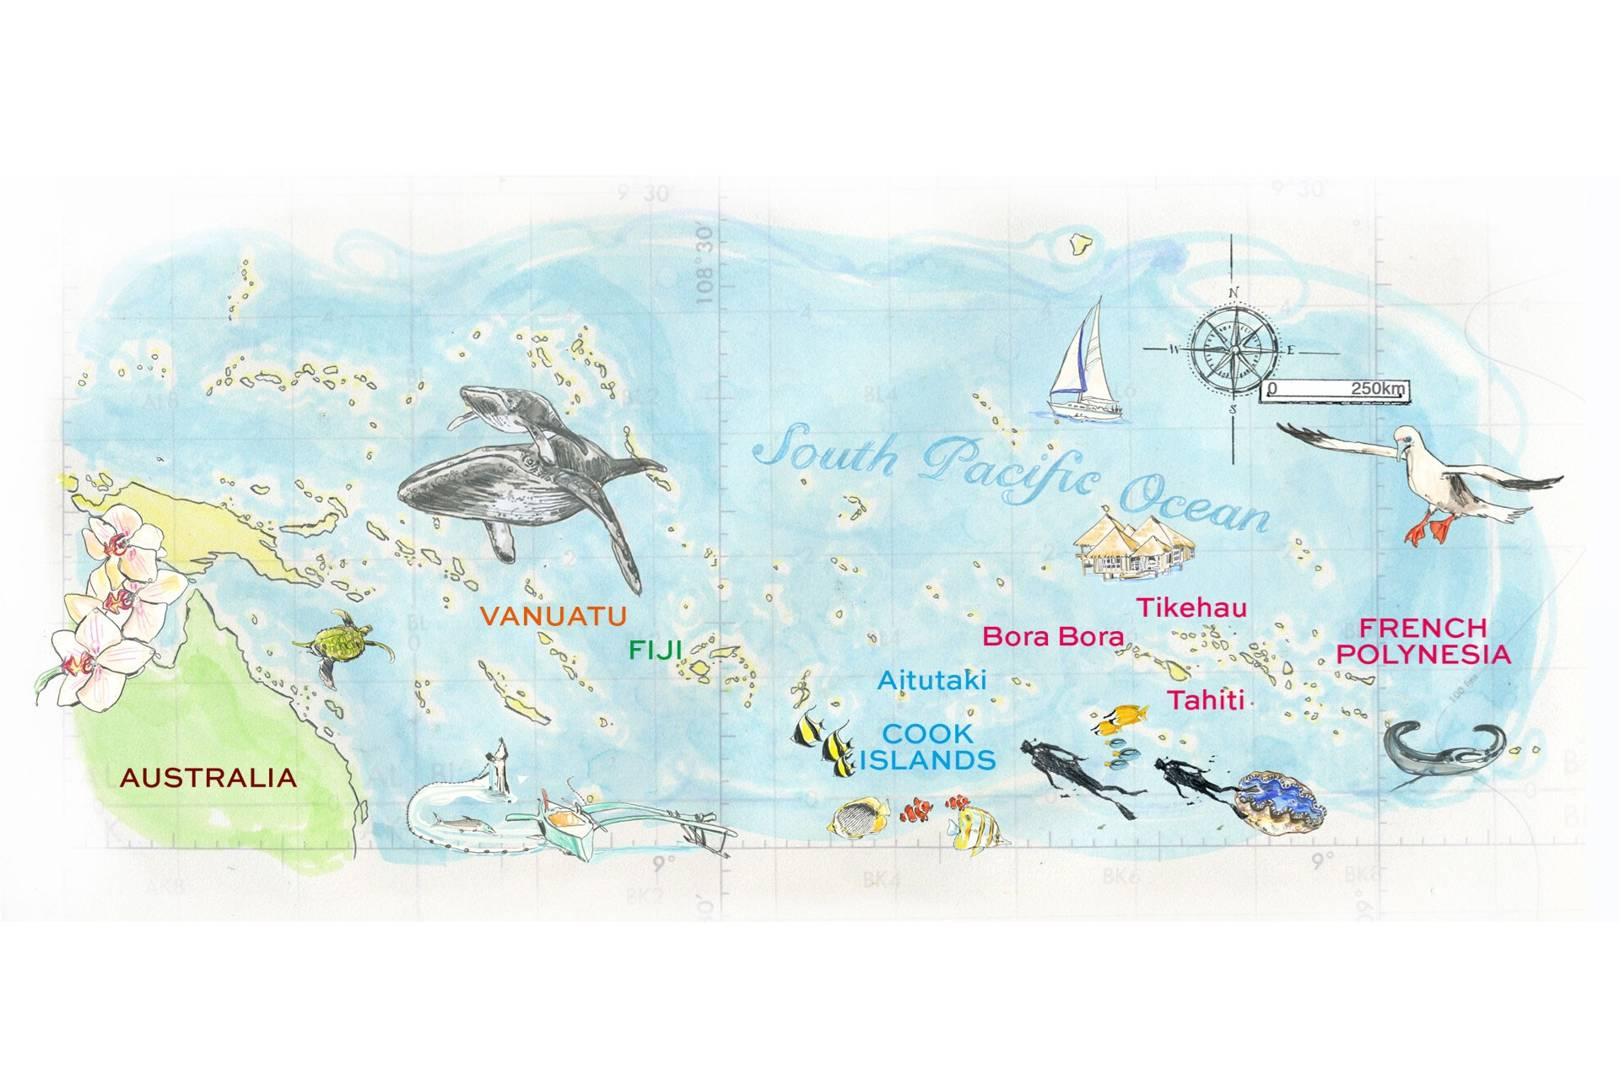 South Pacific hotels   Holidays in French Polynesia, Fiji, Vanuatu ...